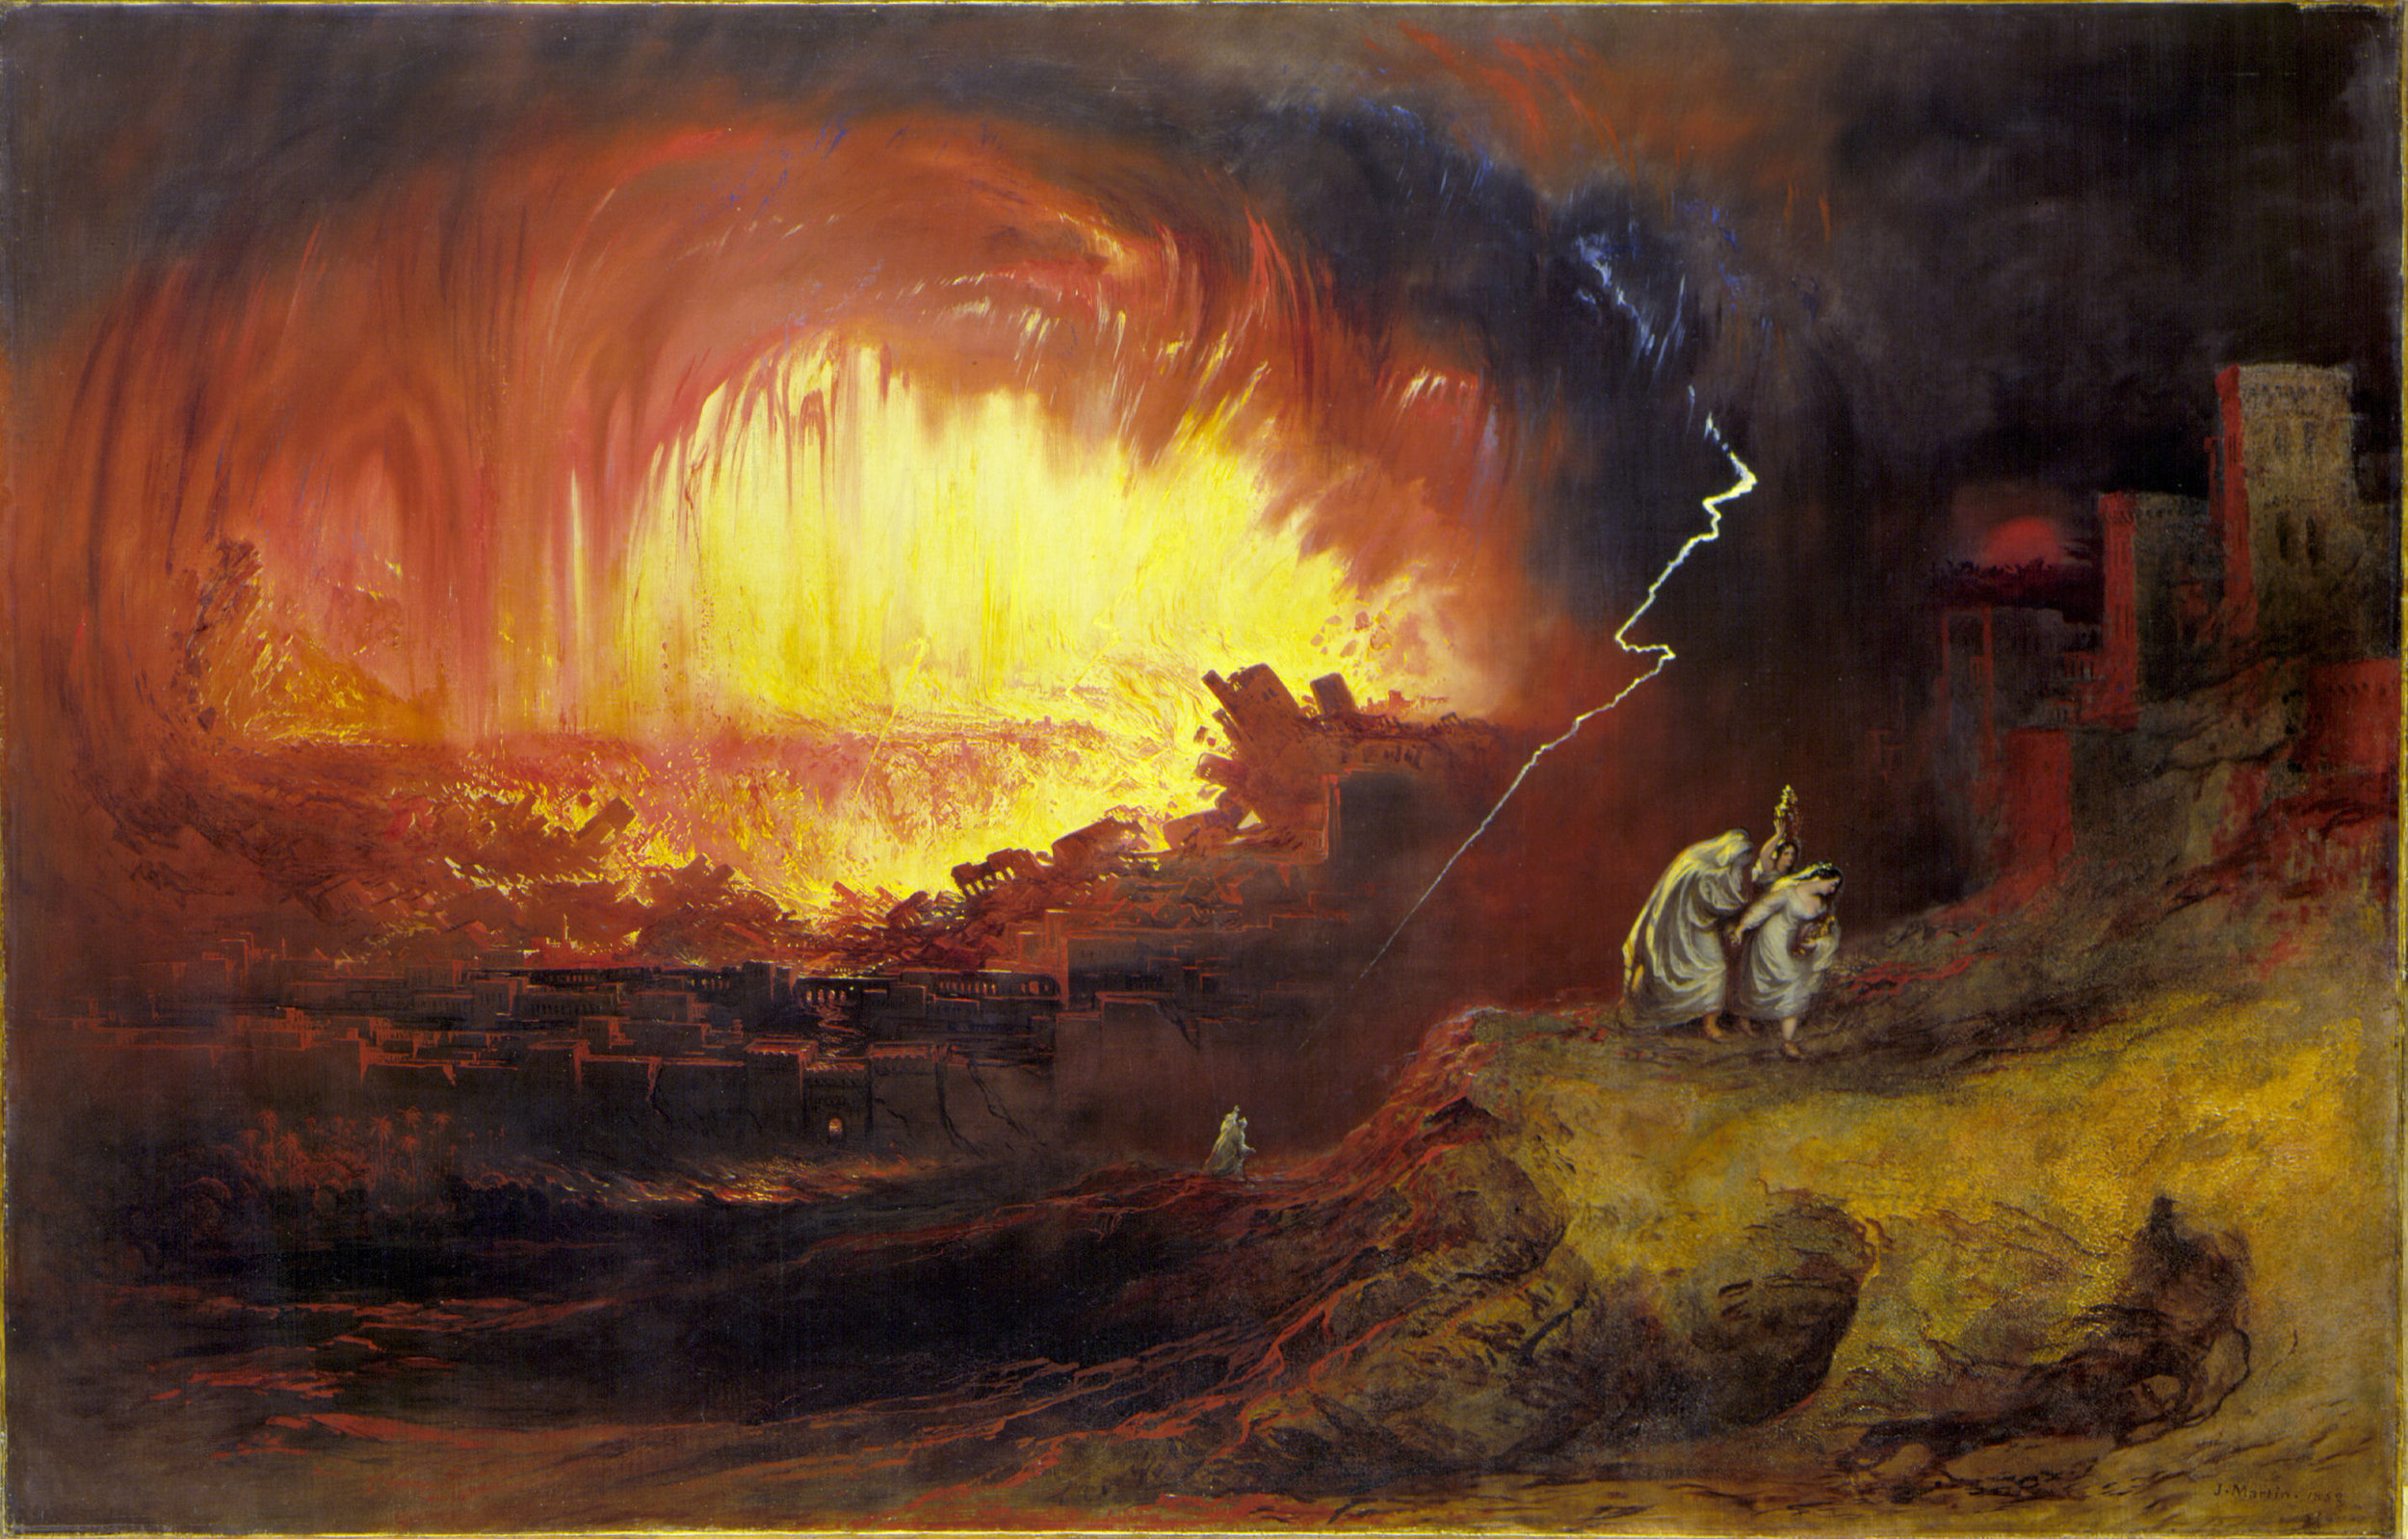 The divine judgment of Sodom, Gomorrah, and the Cities of the Plains